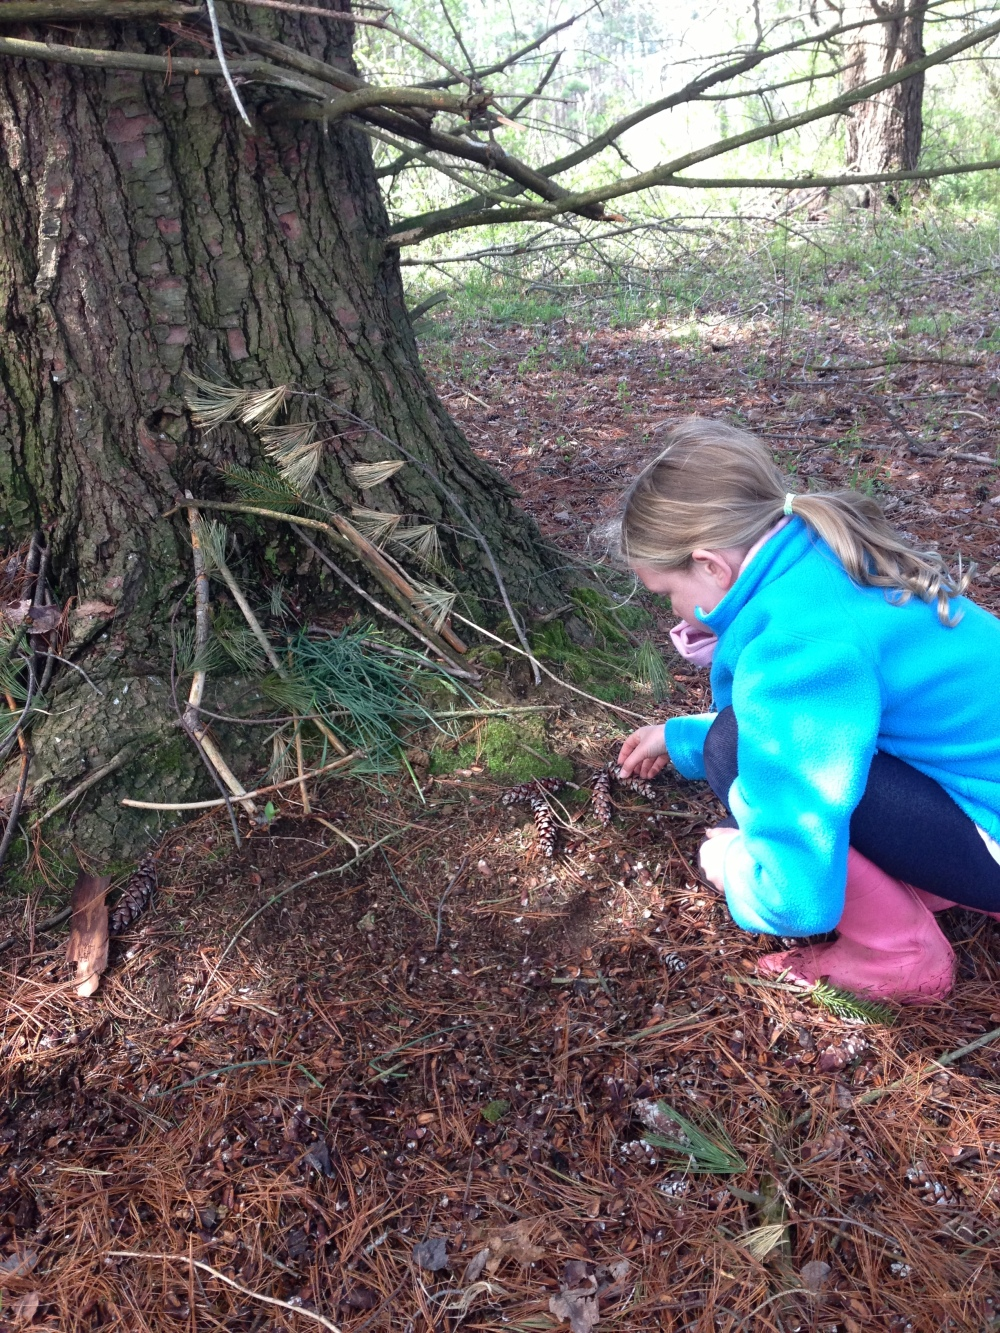 Junior Birder connecting with nature by building a toad abode.  Photo by Blake Goll